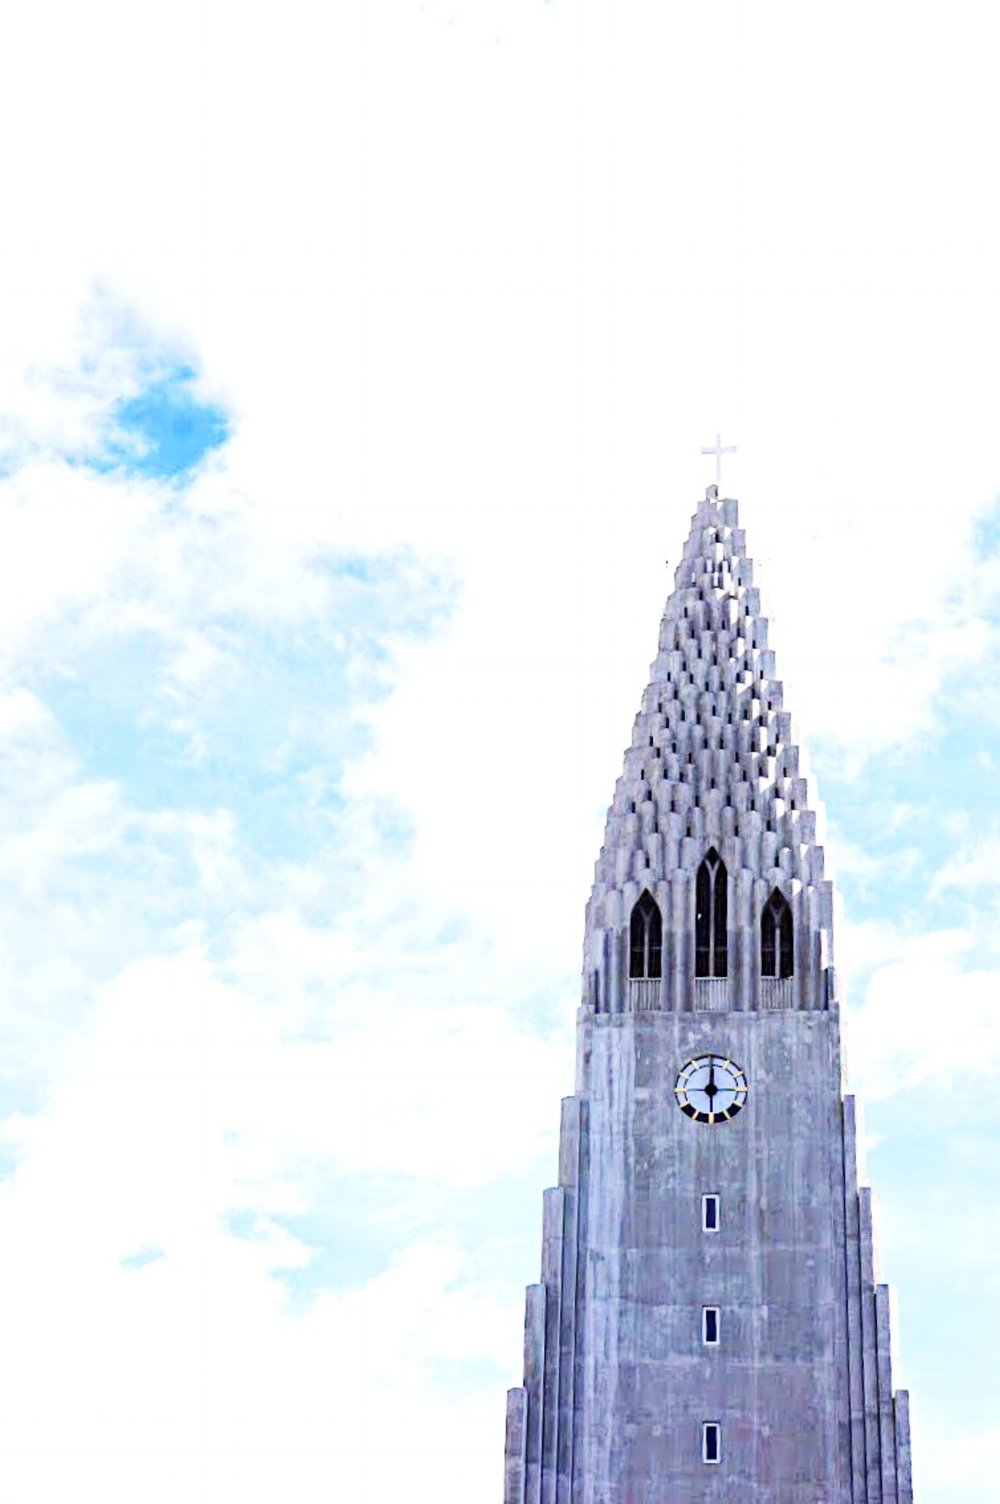 iceland travel guide HALLGRIMSKIRKJA